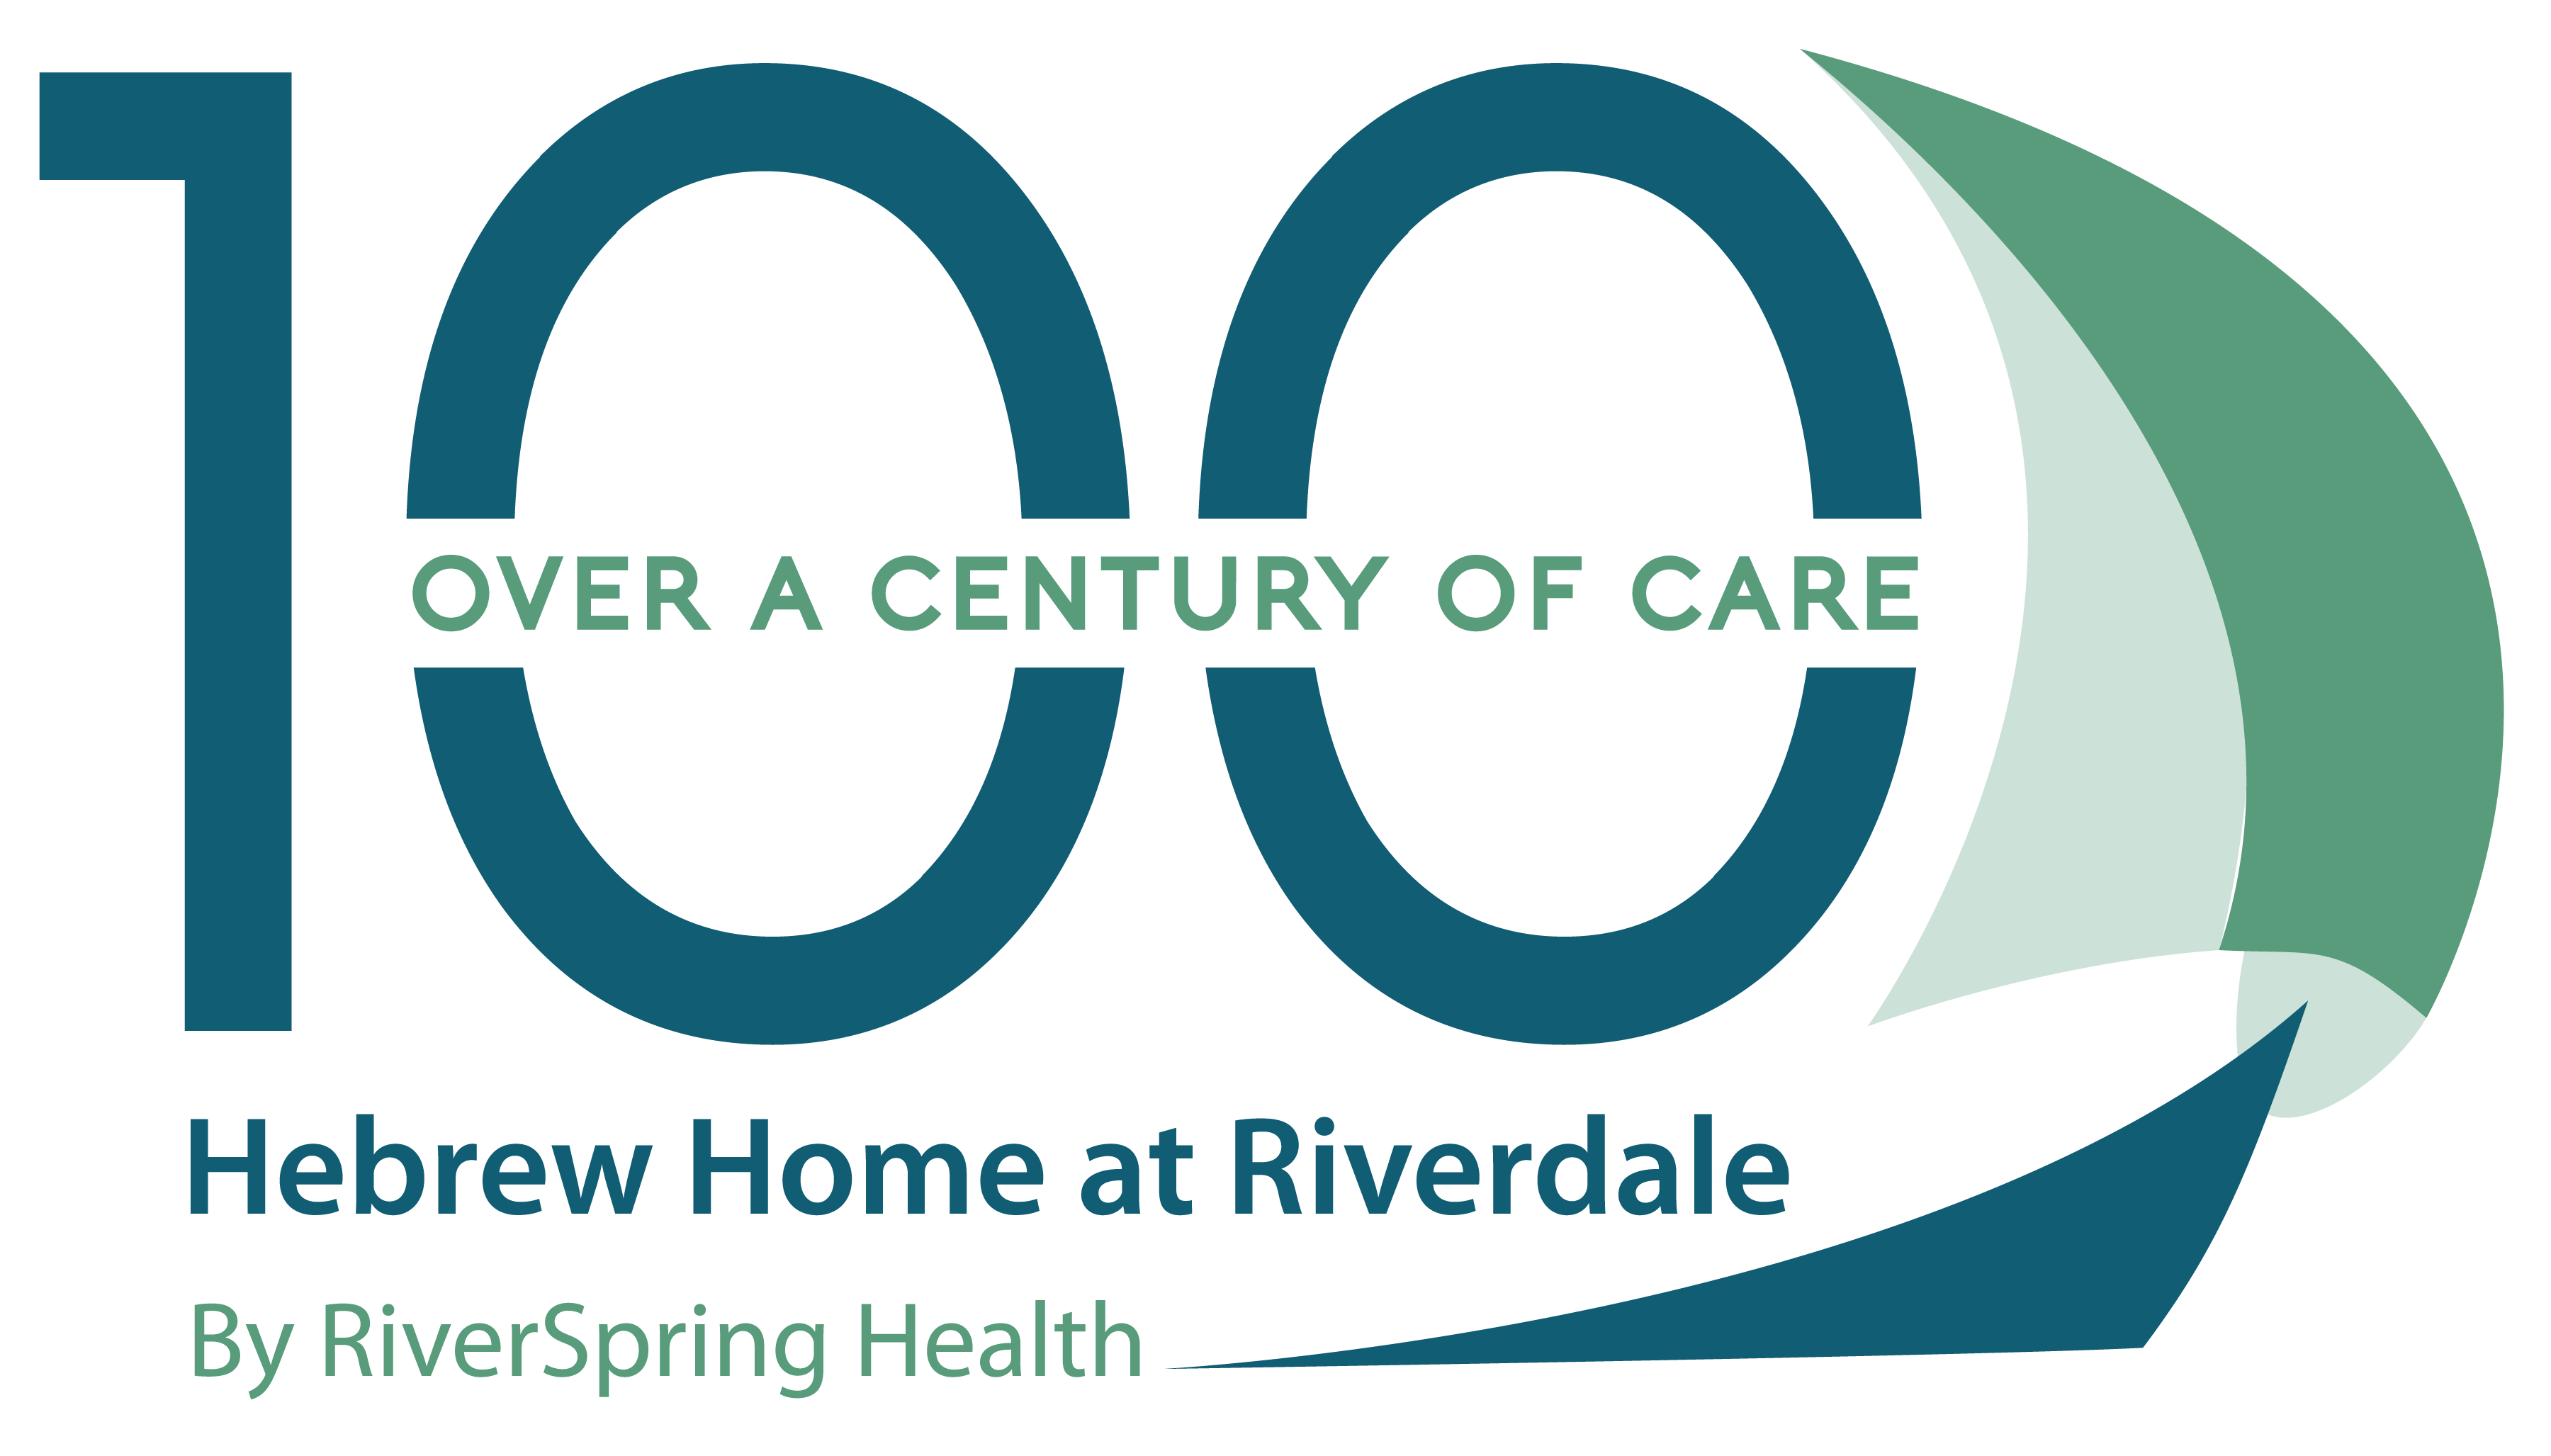 Hebrew Home at Riverdale by RiverSpring Health